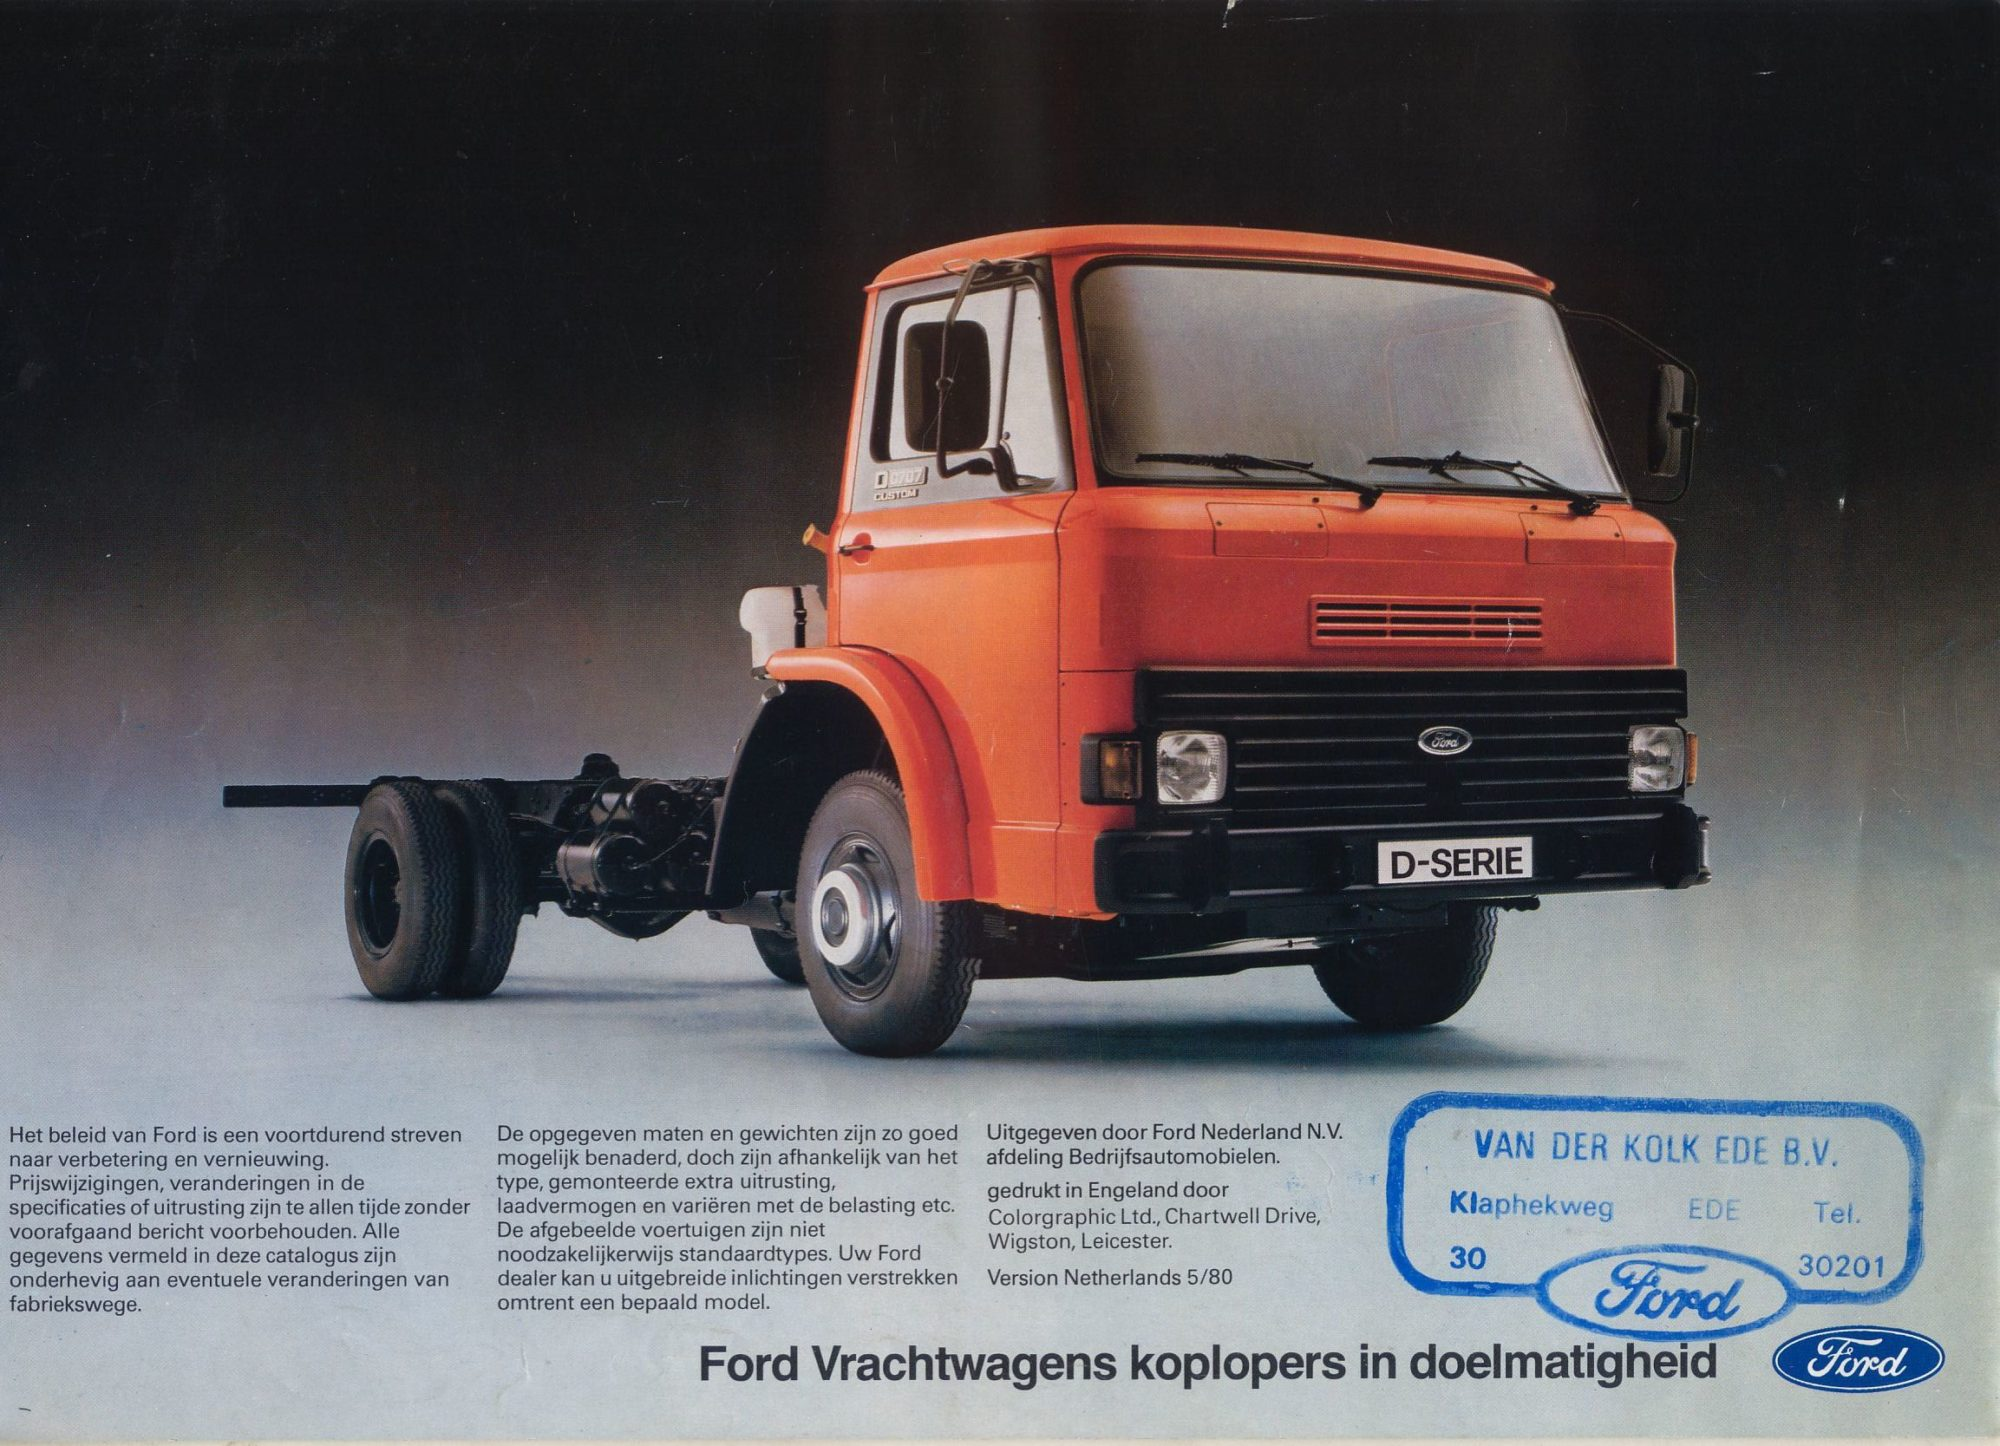 Ford d